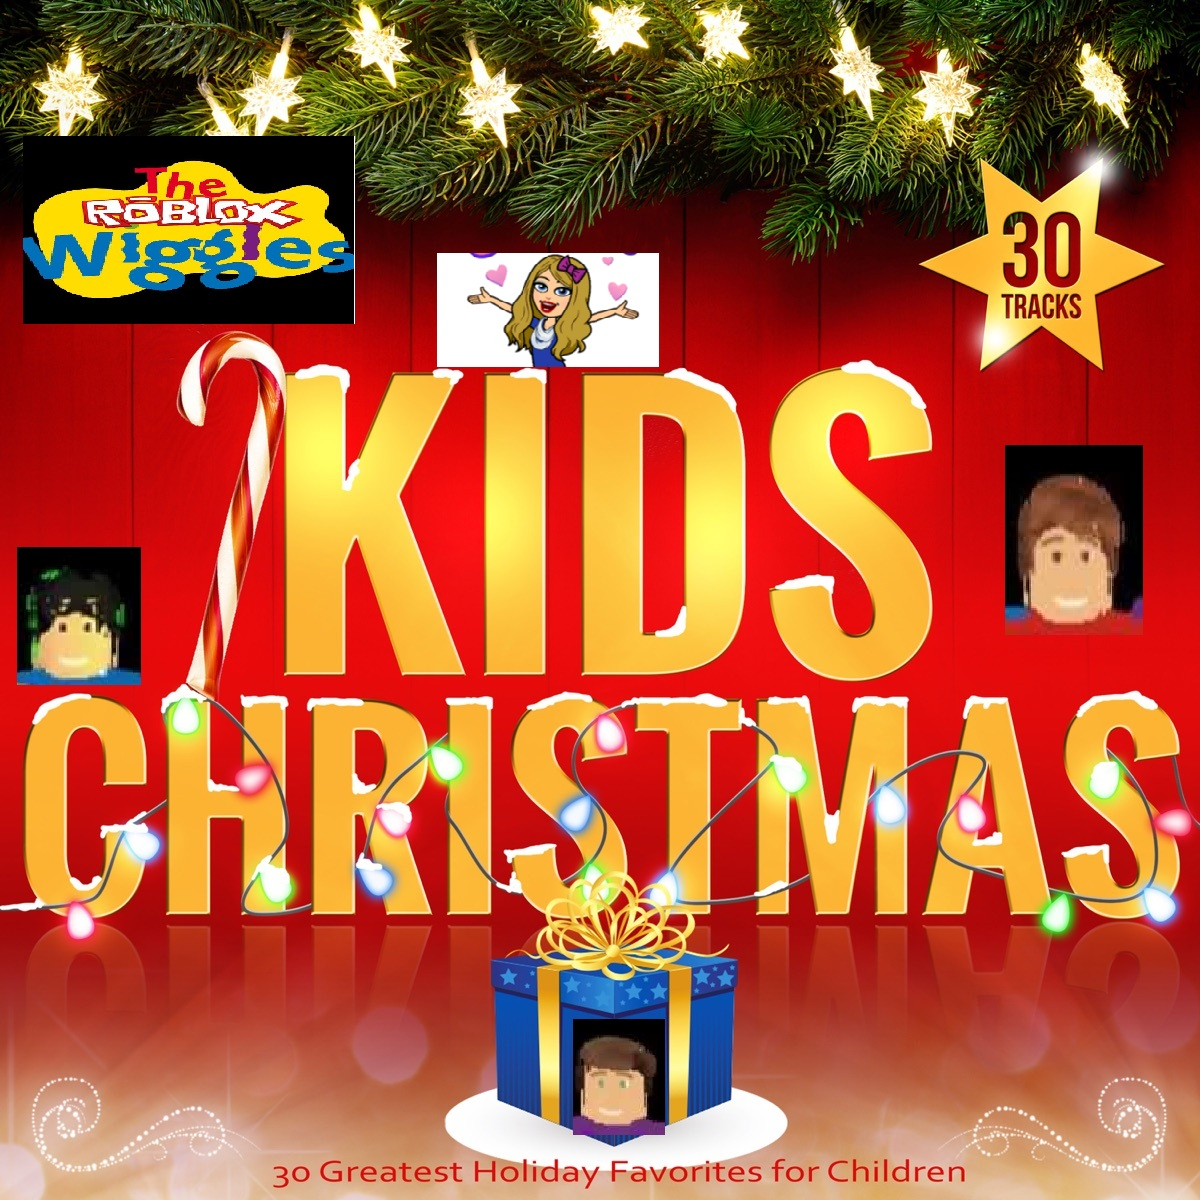 New Christmas Albums Coming Out In 2019 Kids Christmas   The Roblox Wiggles Wiki   FANDOM powered by Wikia